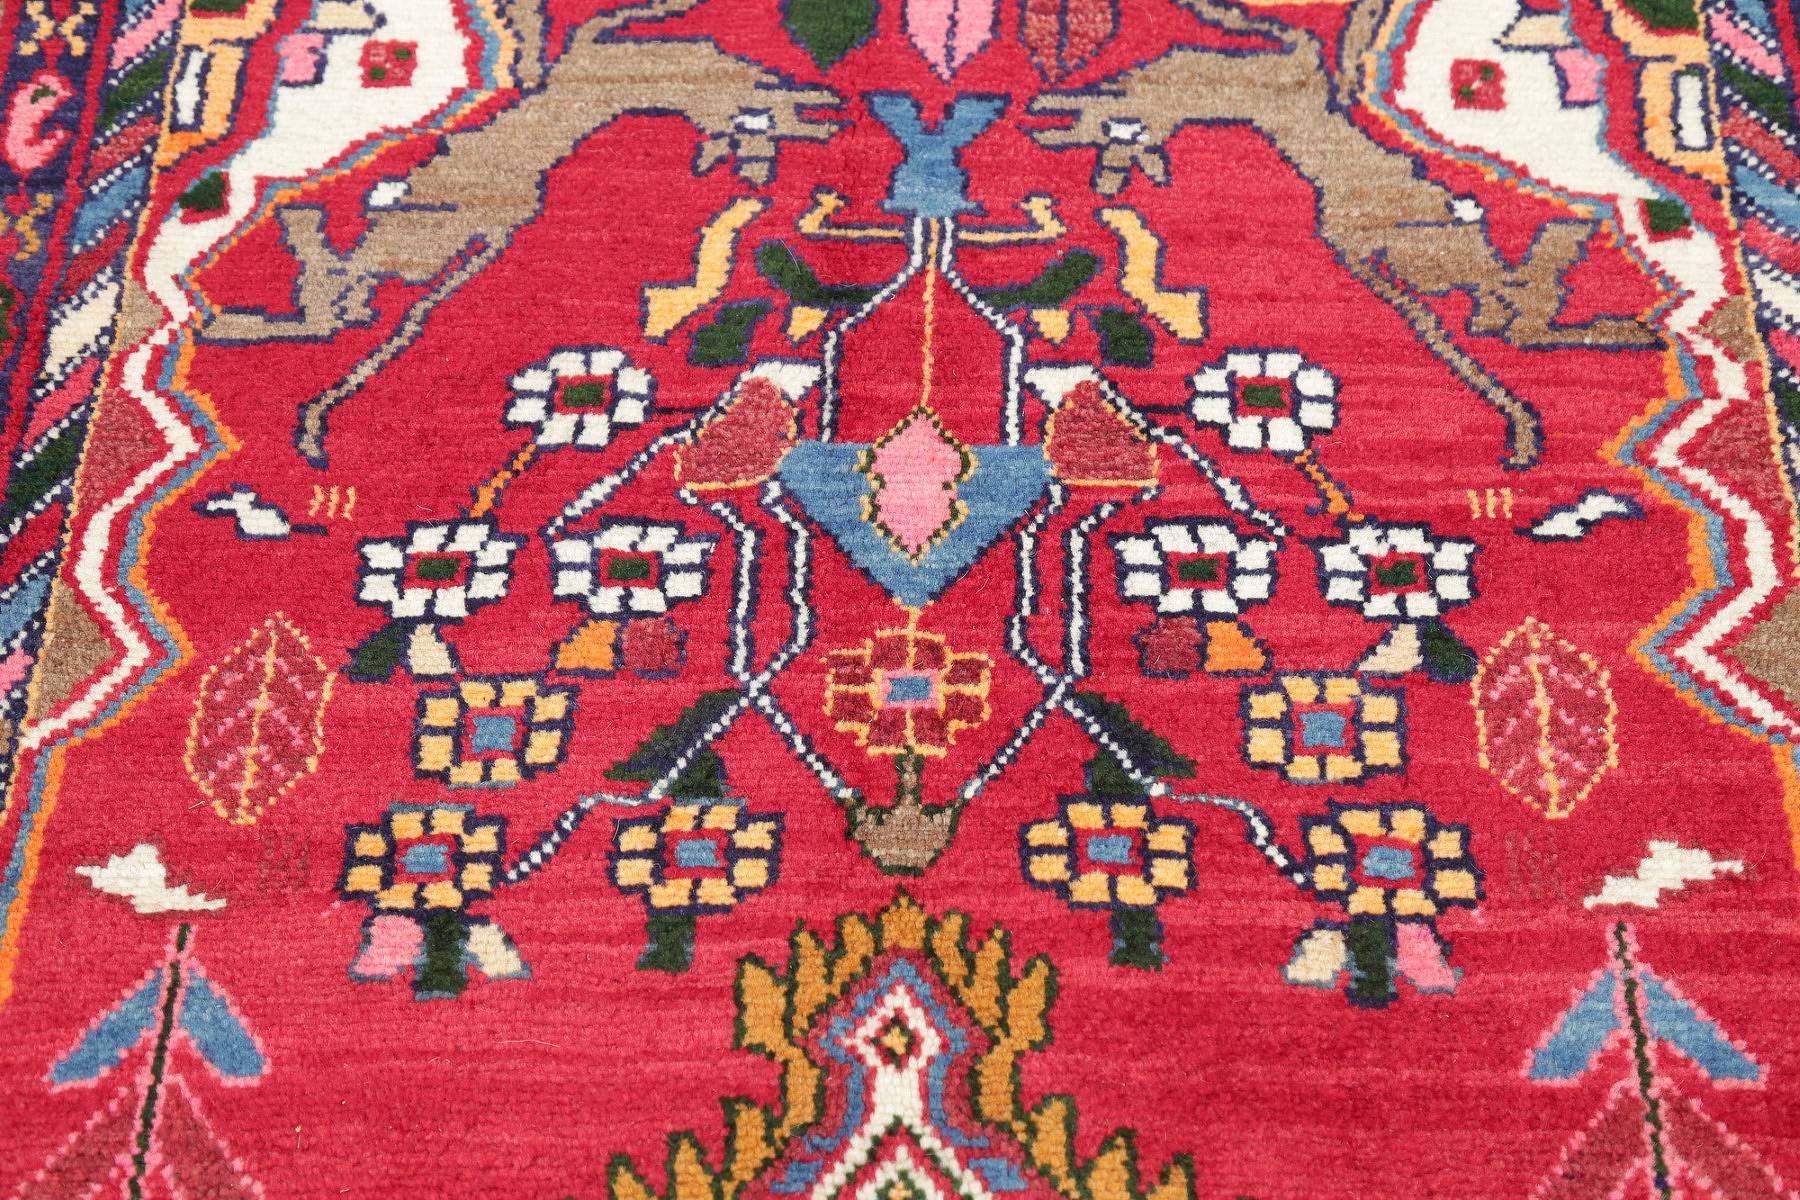 Hand-Knotted Red Animal Pictorial Zanjan Persian Area Rug Wool 4x6